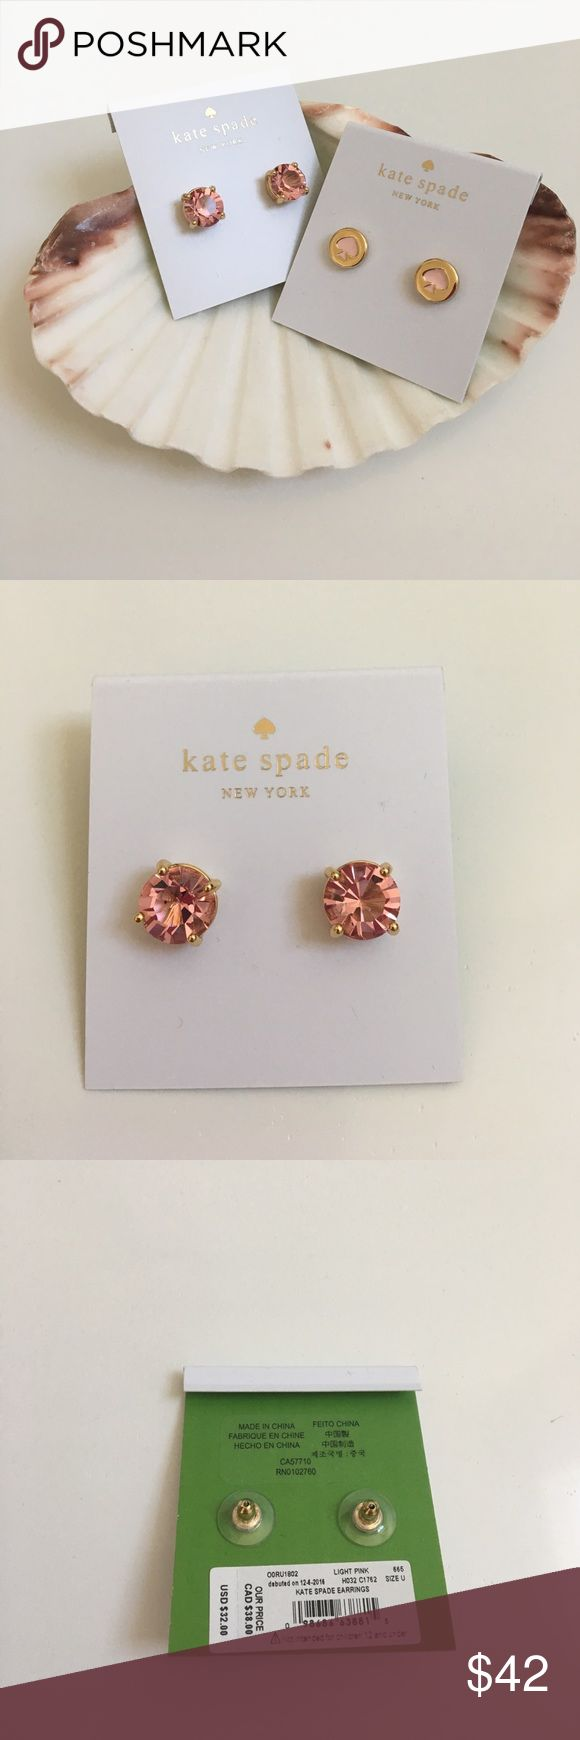 { Kate Spade } bundle of 2 earrings Kate Spade 2 stud earring bundle as shown in picture. One in light pink and gold colors and one spot the spade in light pink and gold colors. So cute and can be worn for a dress up or casual wear! This is a bundle price. kate spade Jewelry Earrings